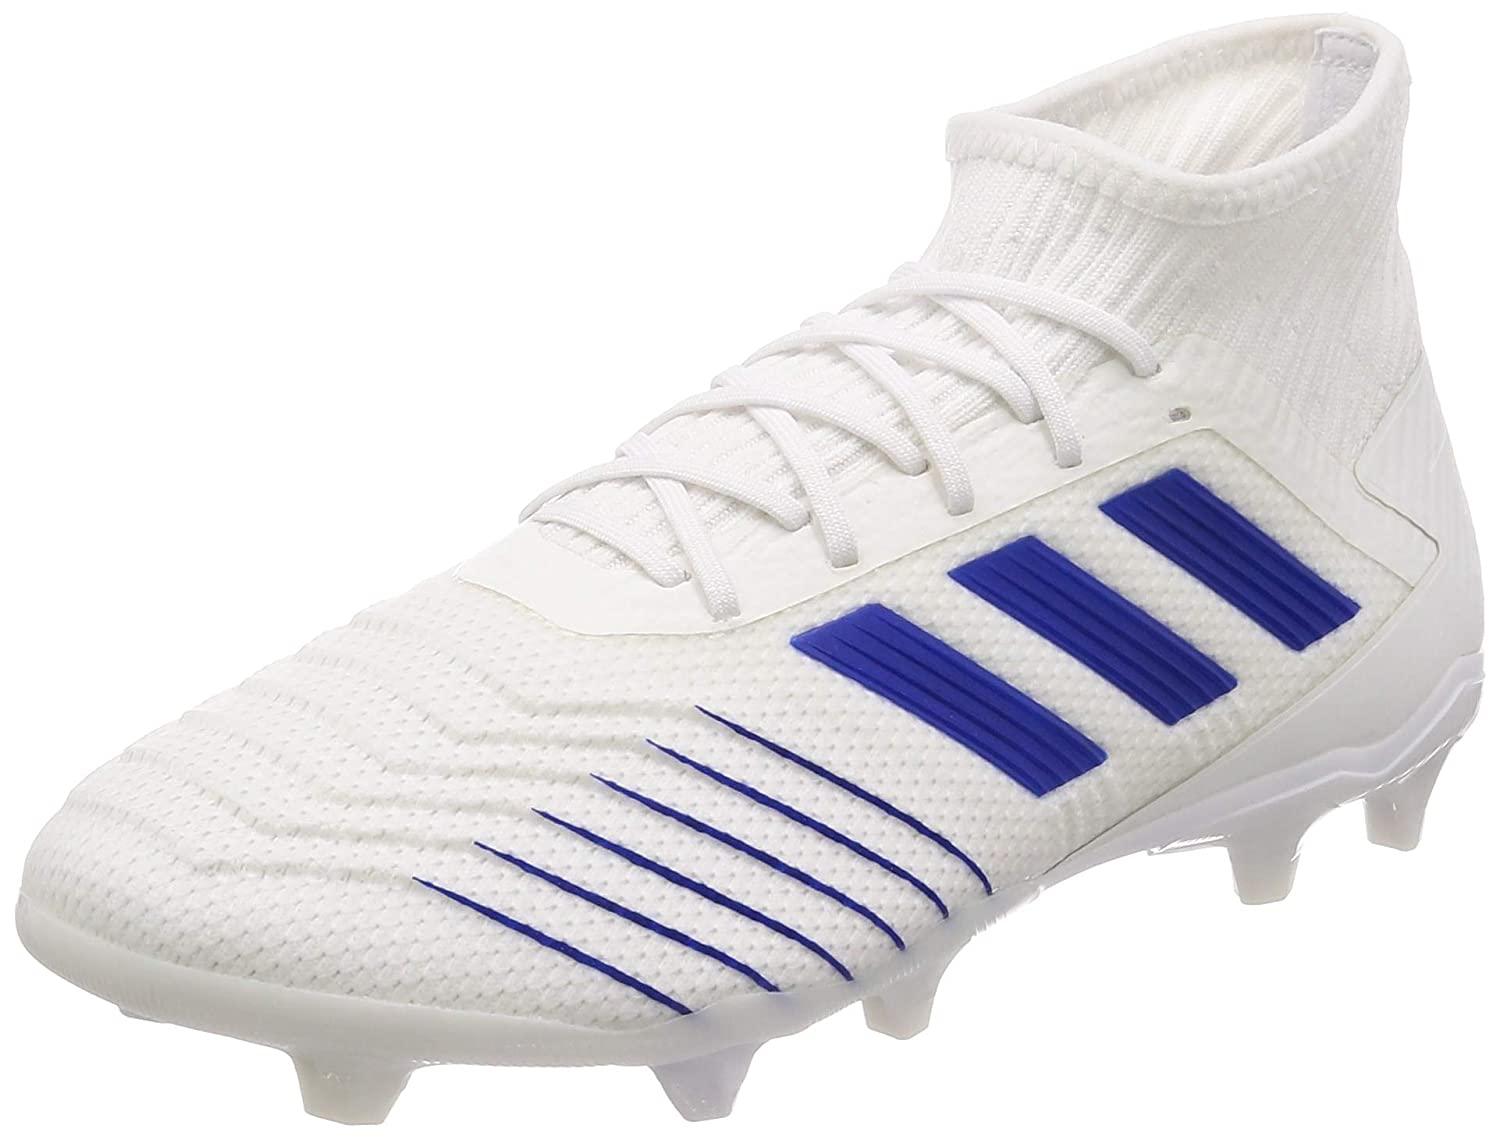 MultiCouleure (Ftw Bla Azufue Azufue 000) 40 2 3 EU adidas Prougeator 19.2 FG, Chaussures de Football Homme